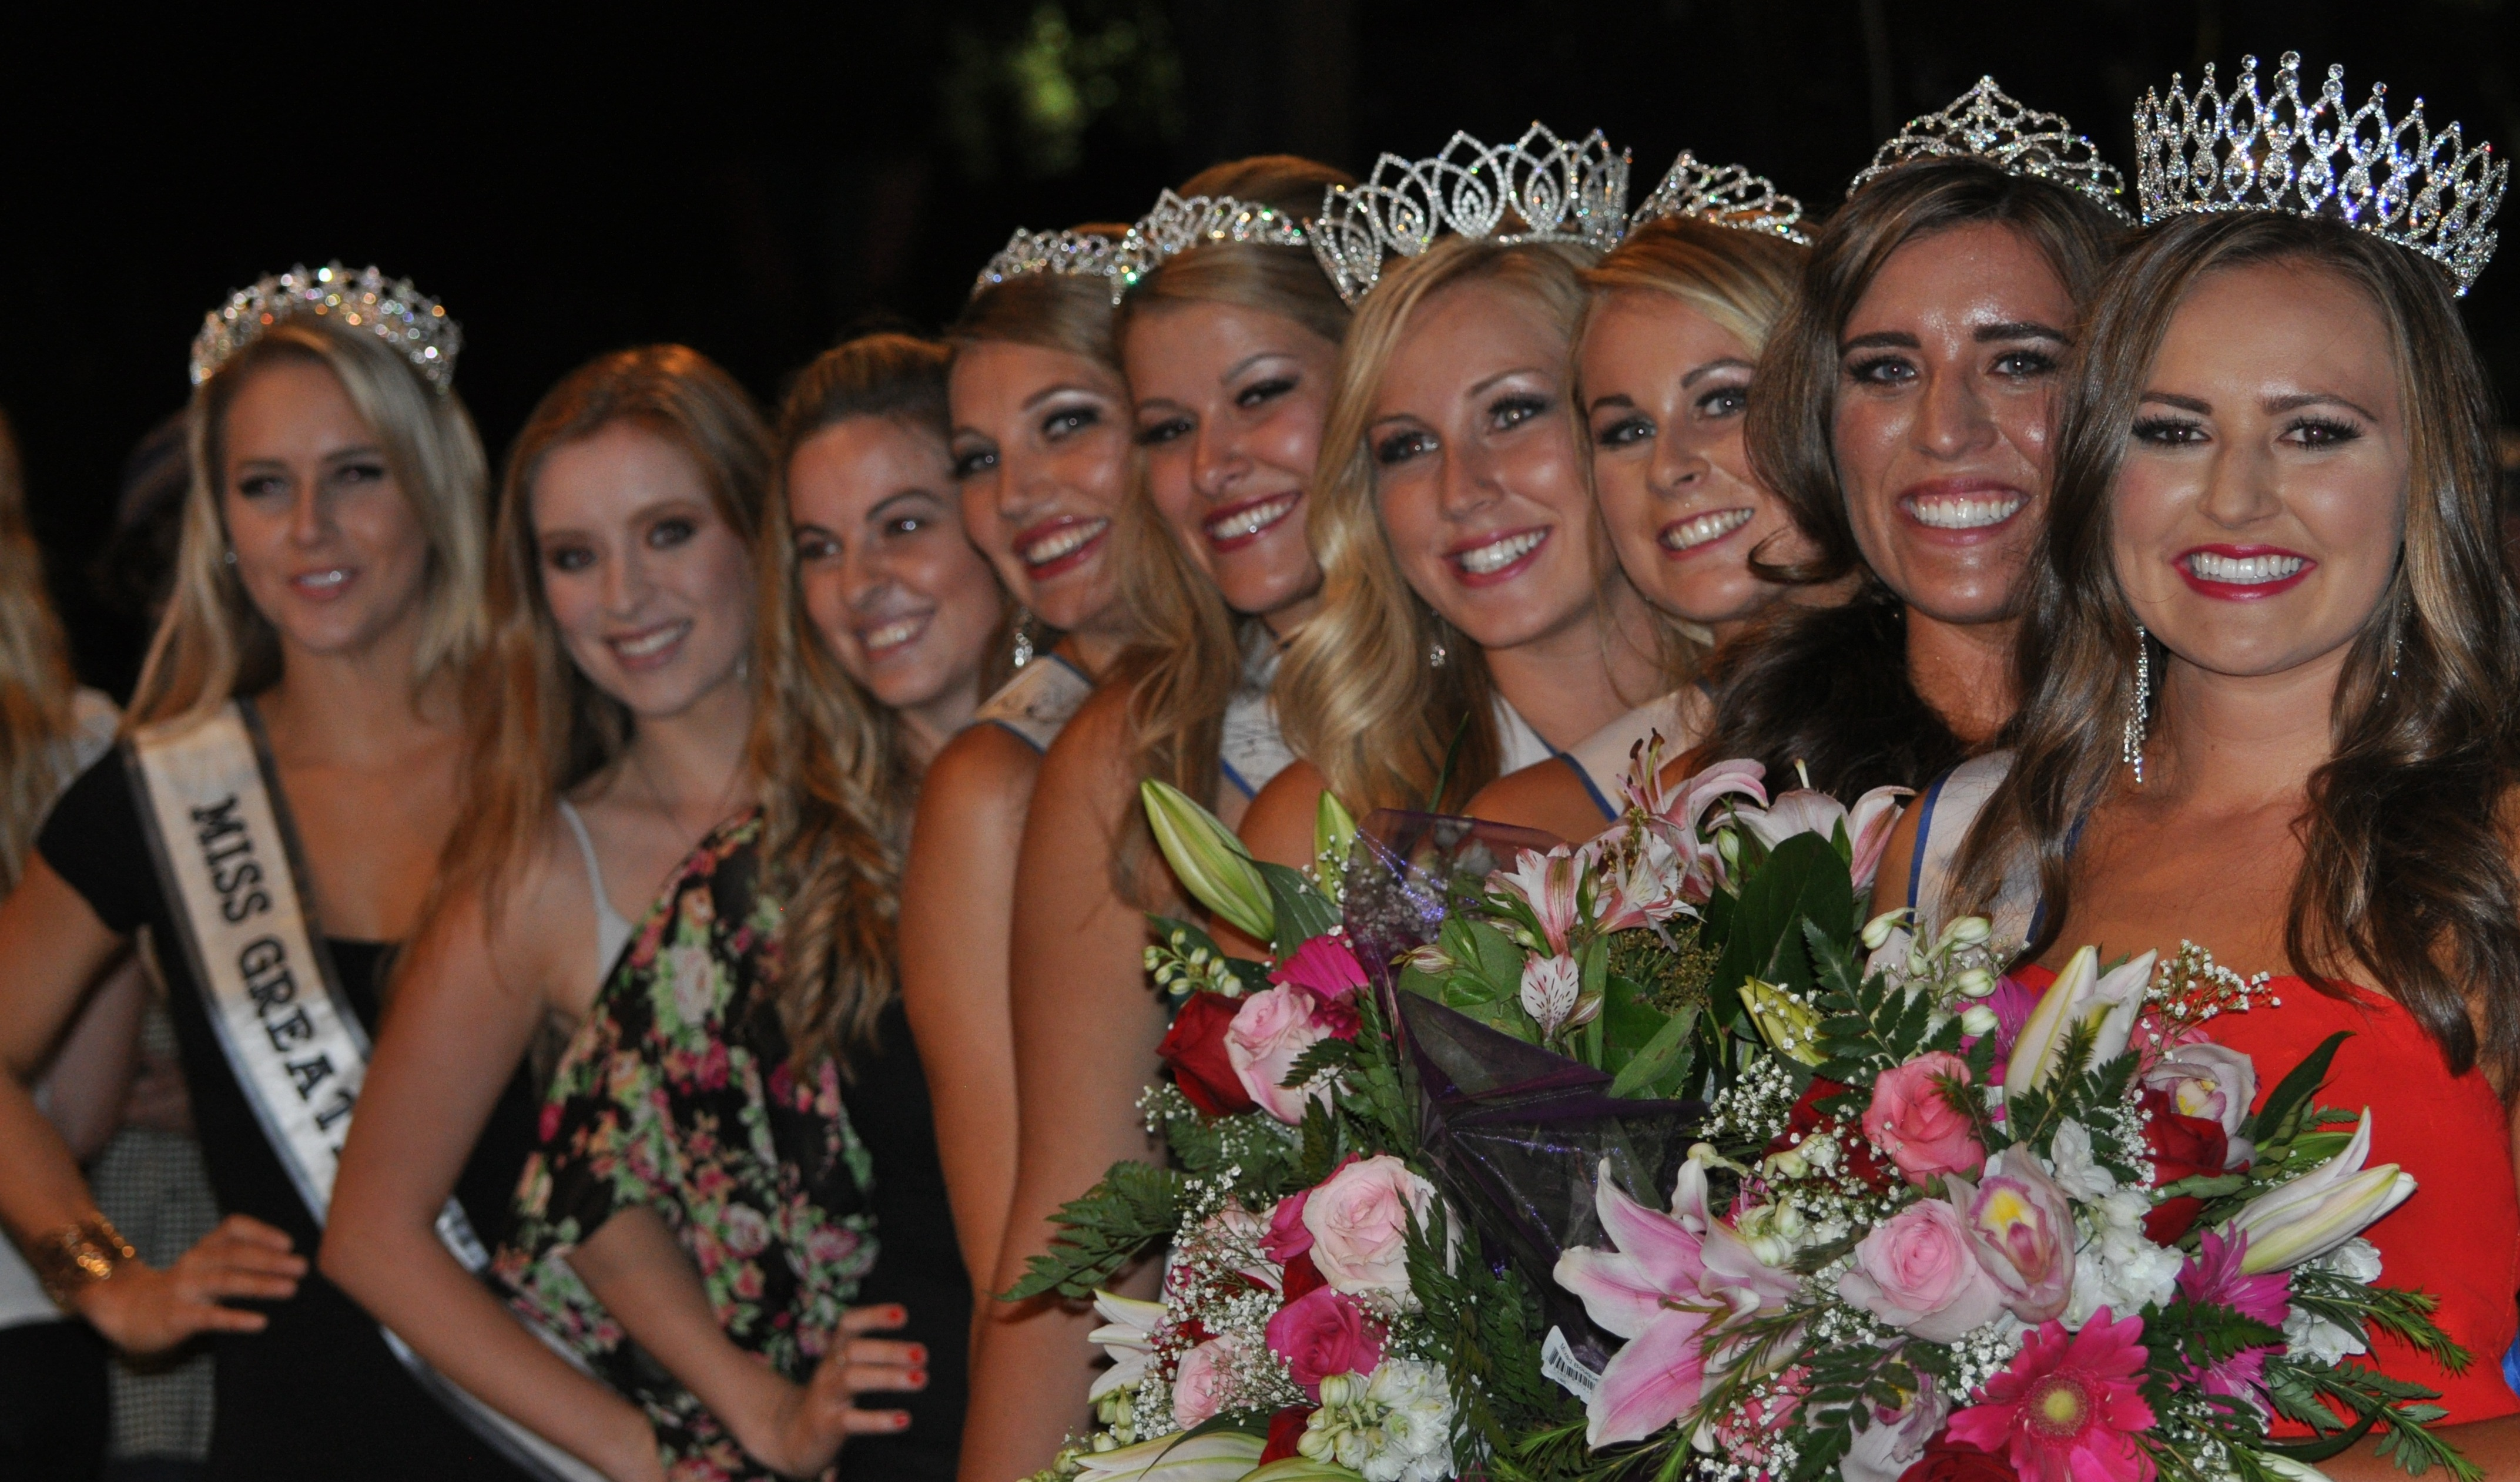 Miss CMSF 2014 Taylor Lindquist